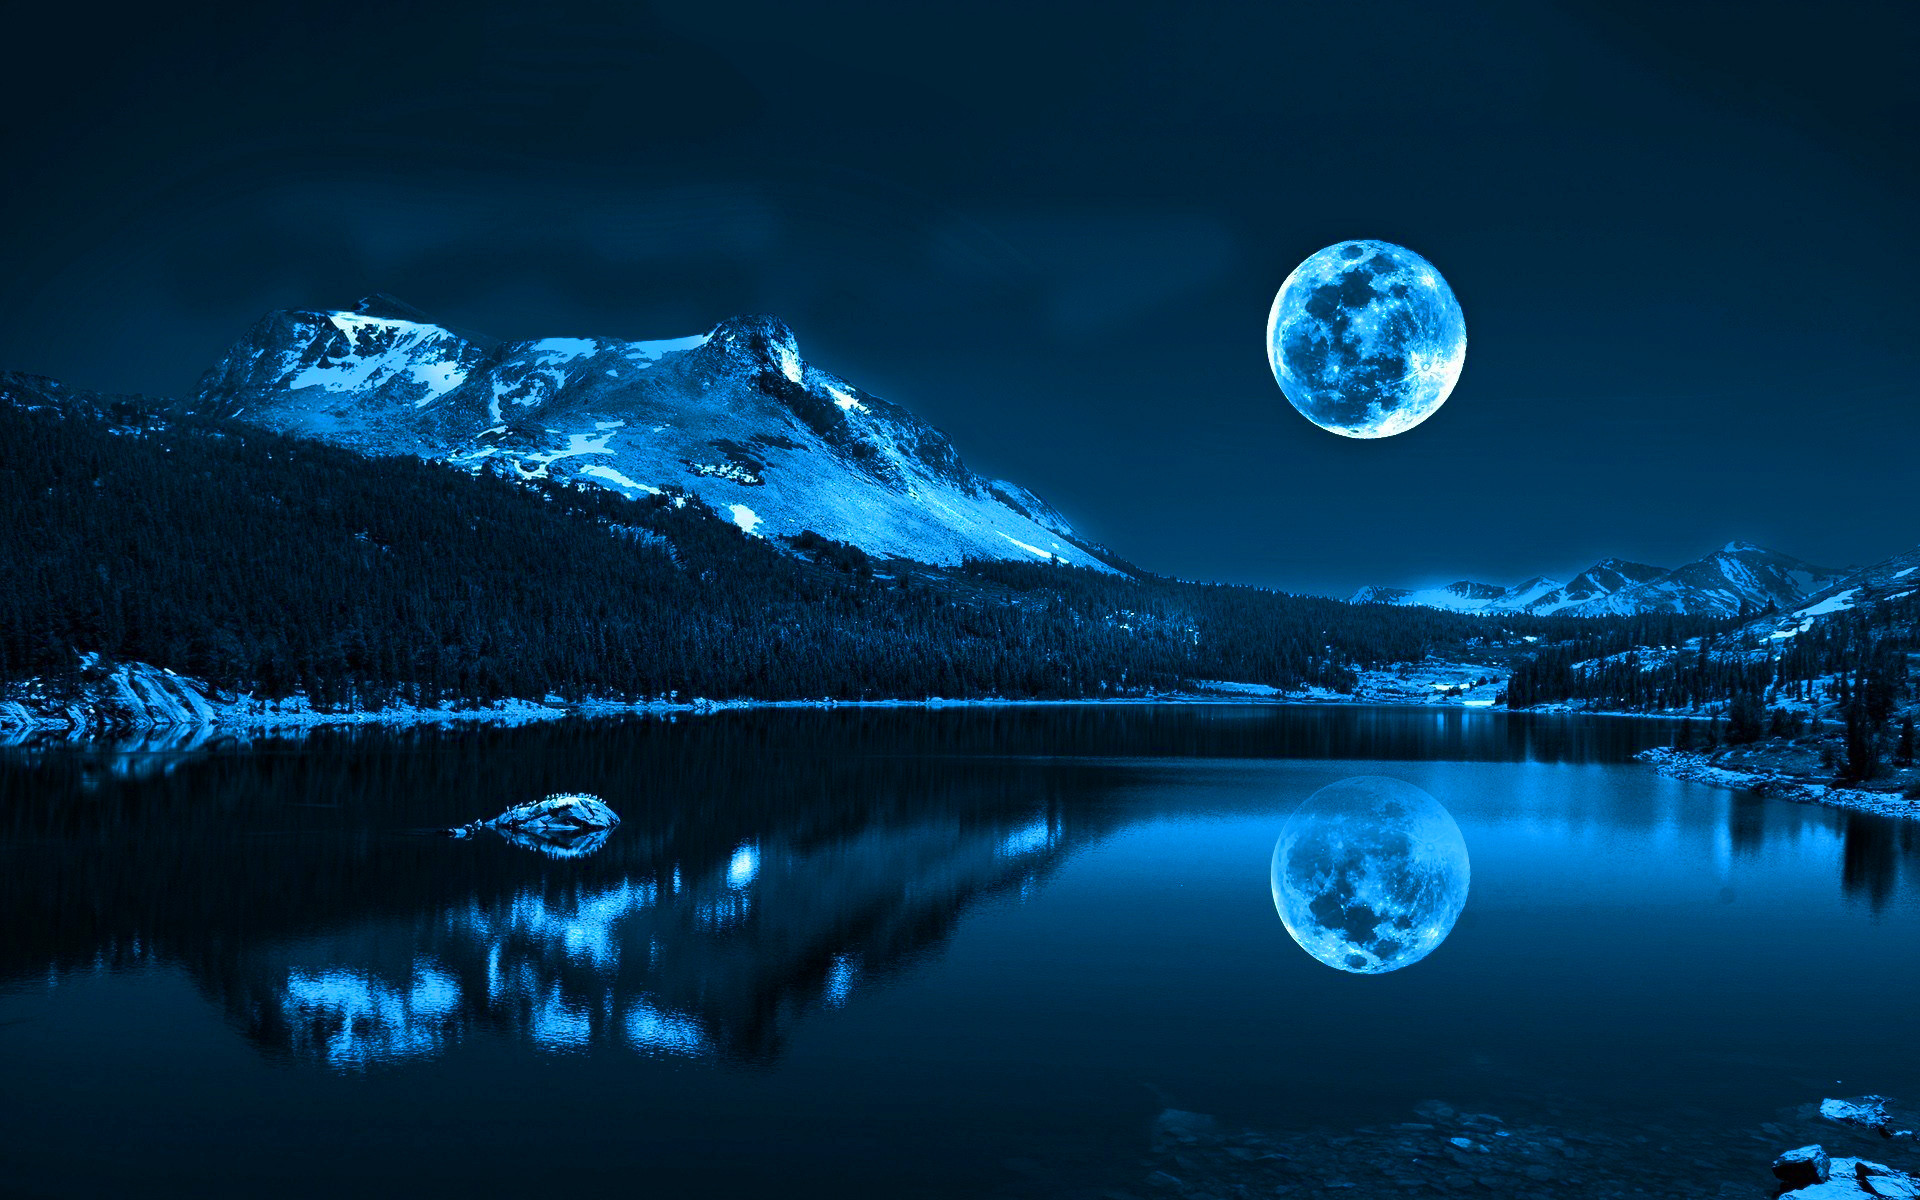 1920x1200 Related Wallpapers from Milky Way Wallpaper. Full moon over lake